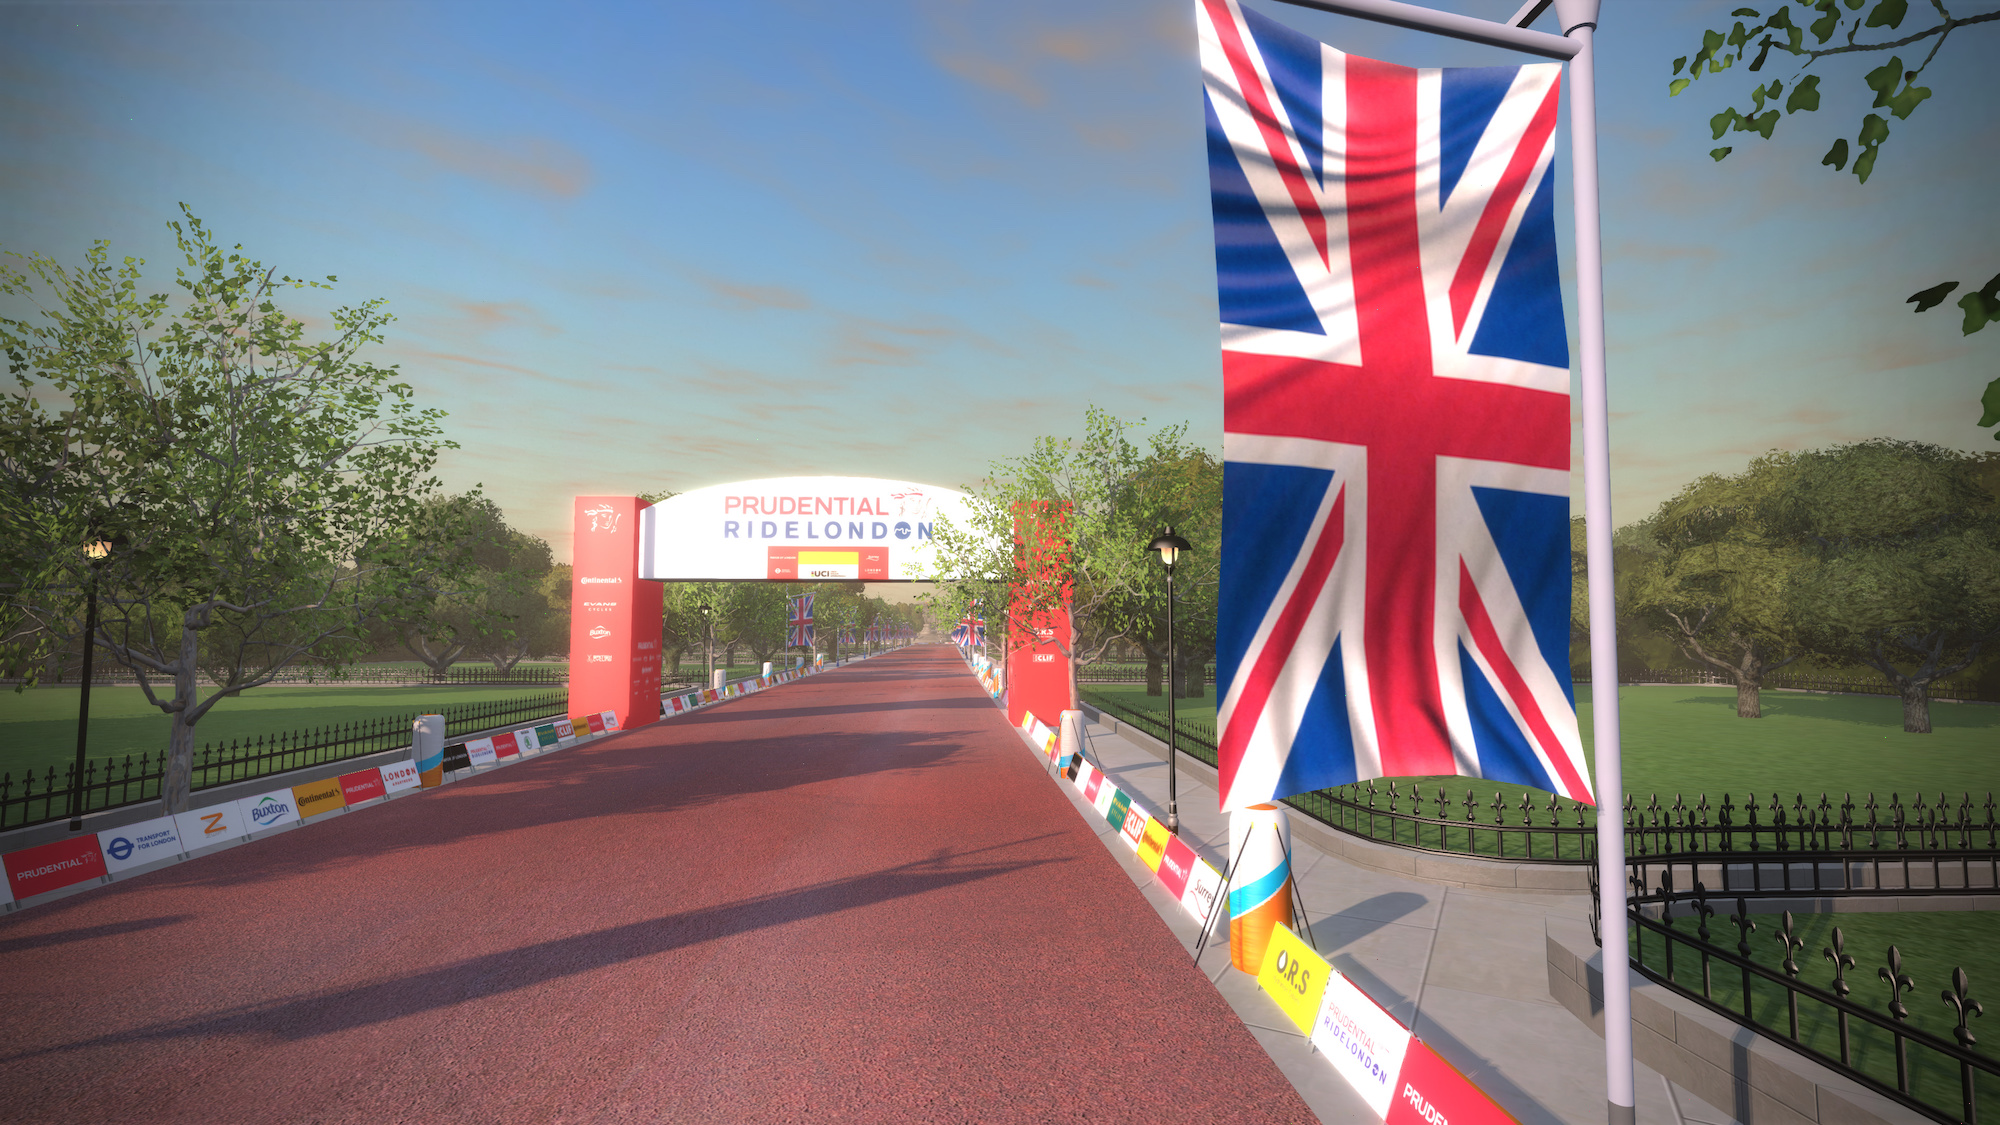 Zwift Launches New Virtual Course on the eve of Prudential